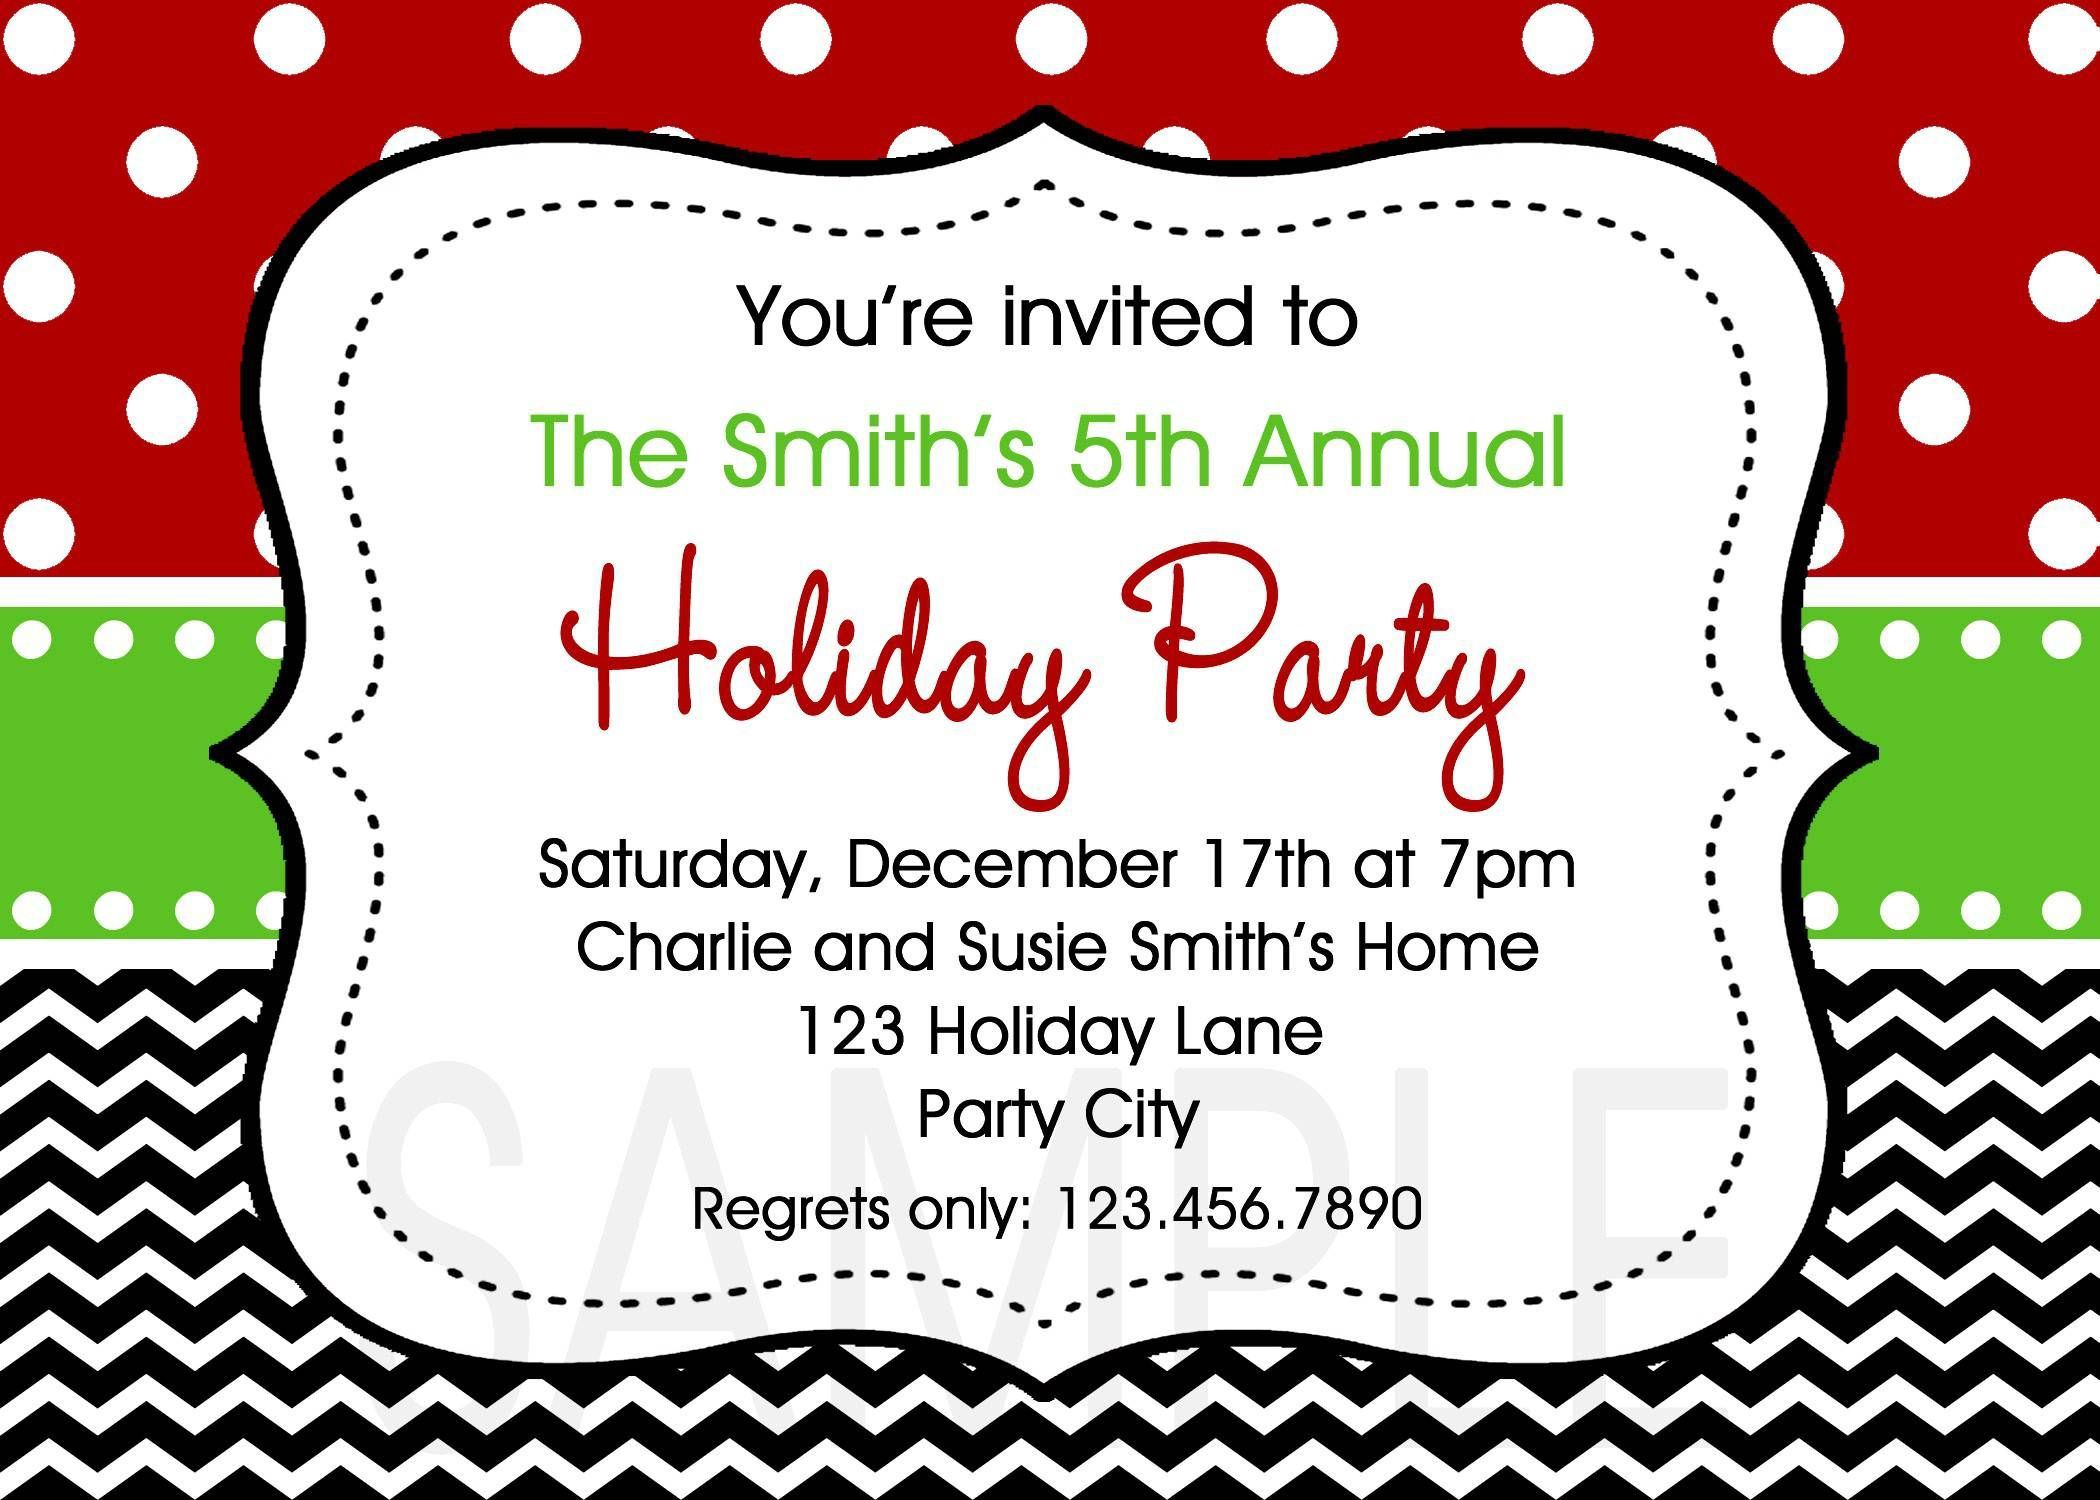 003 Stirring Free Holiday Party Invitation Template For Word Picture Full